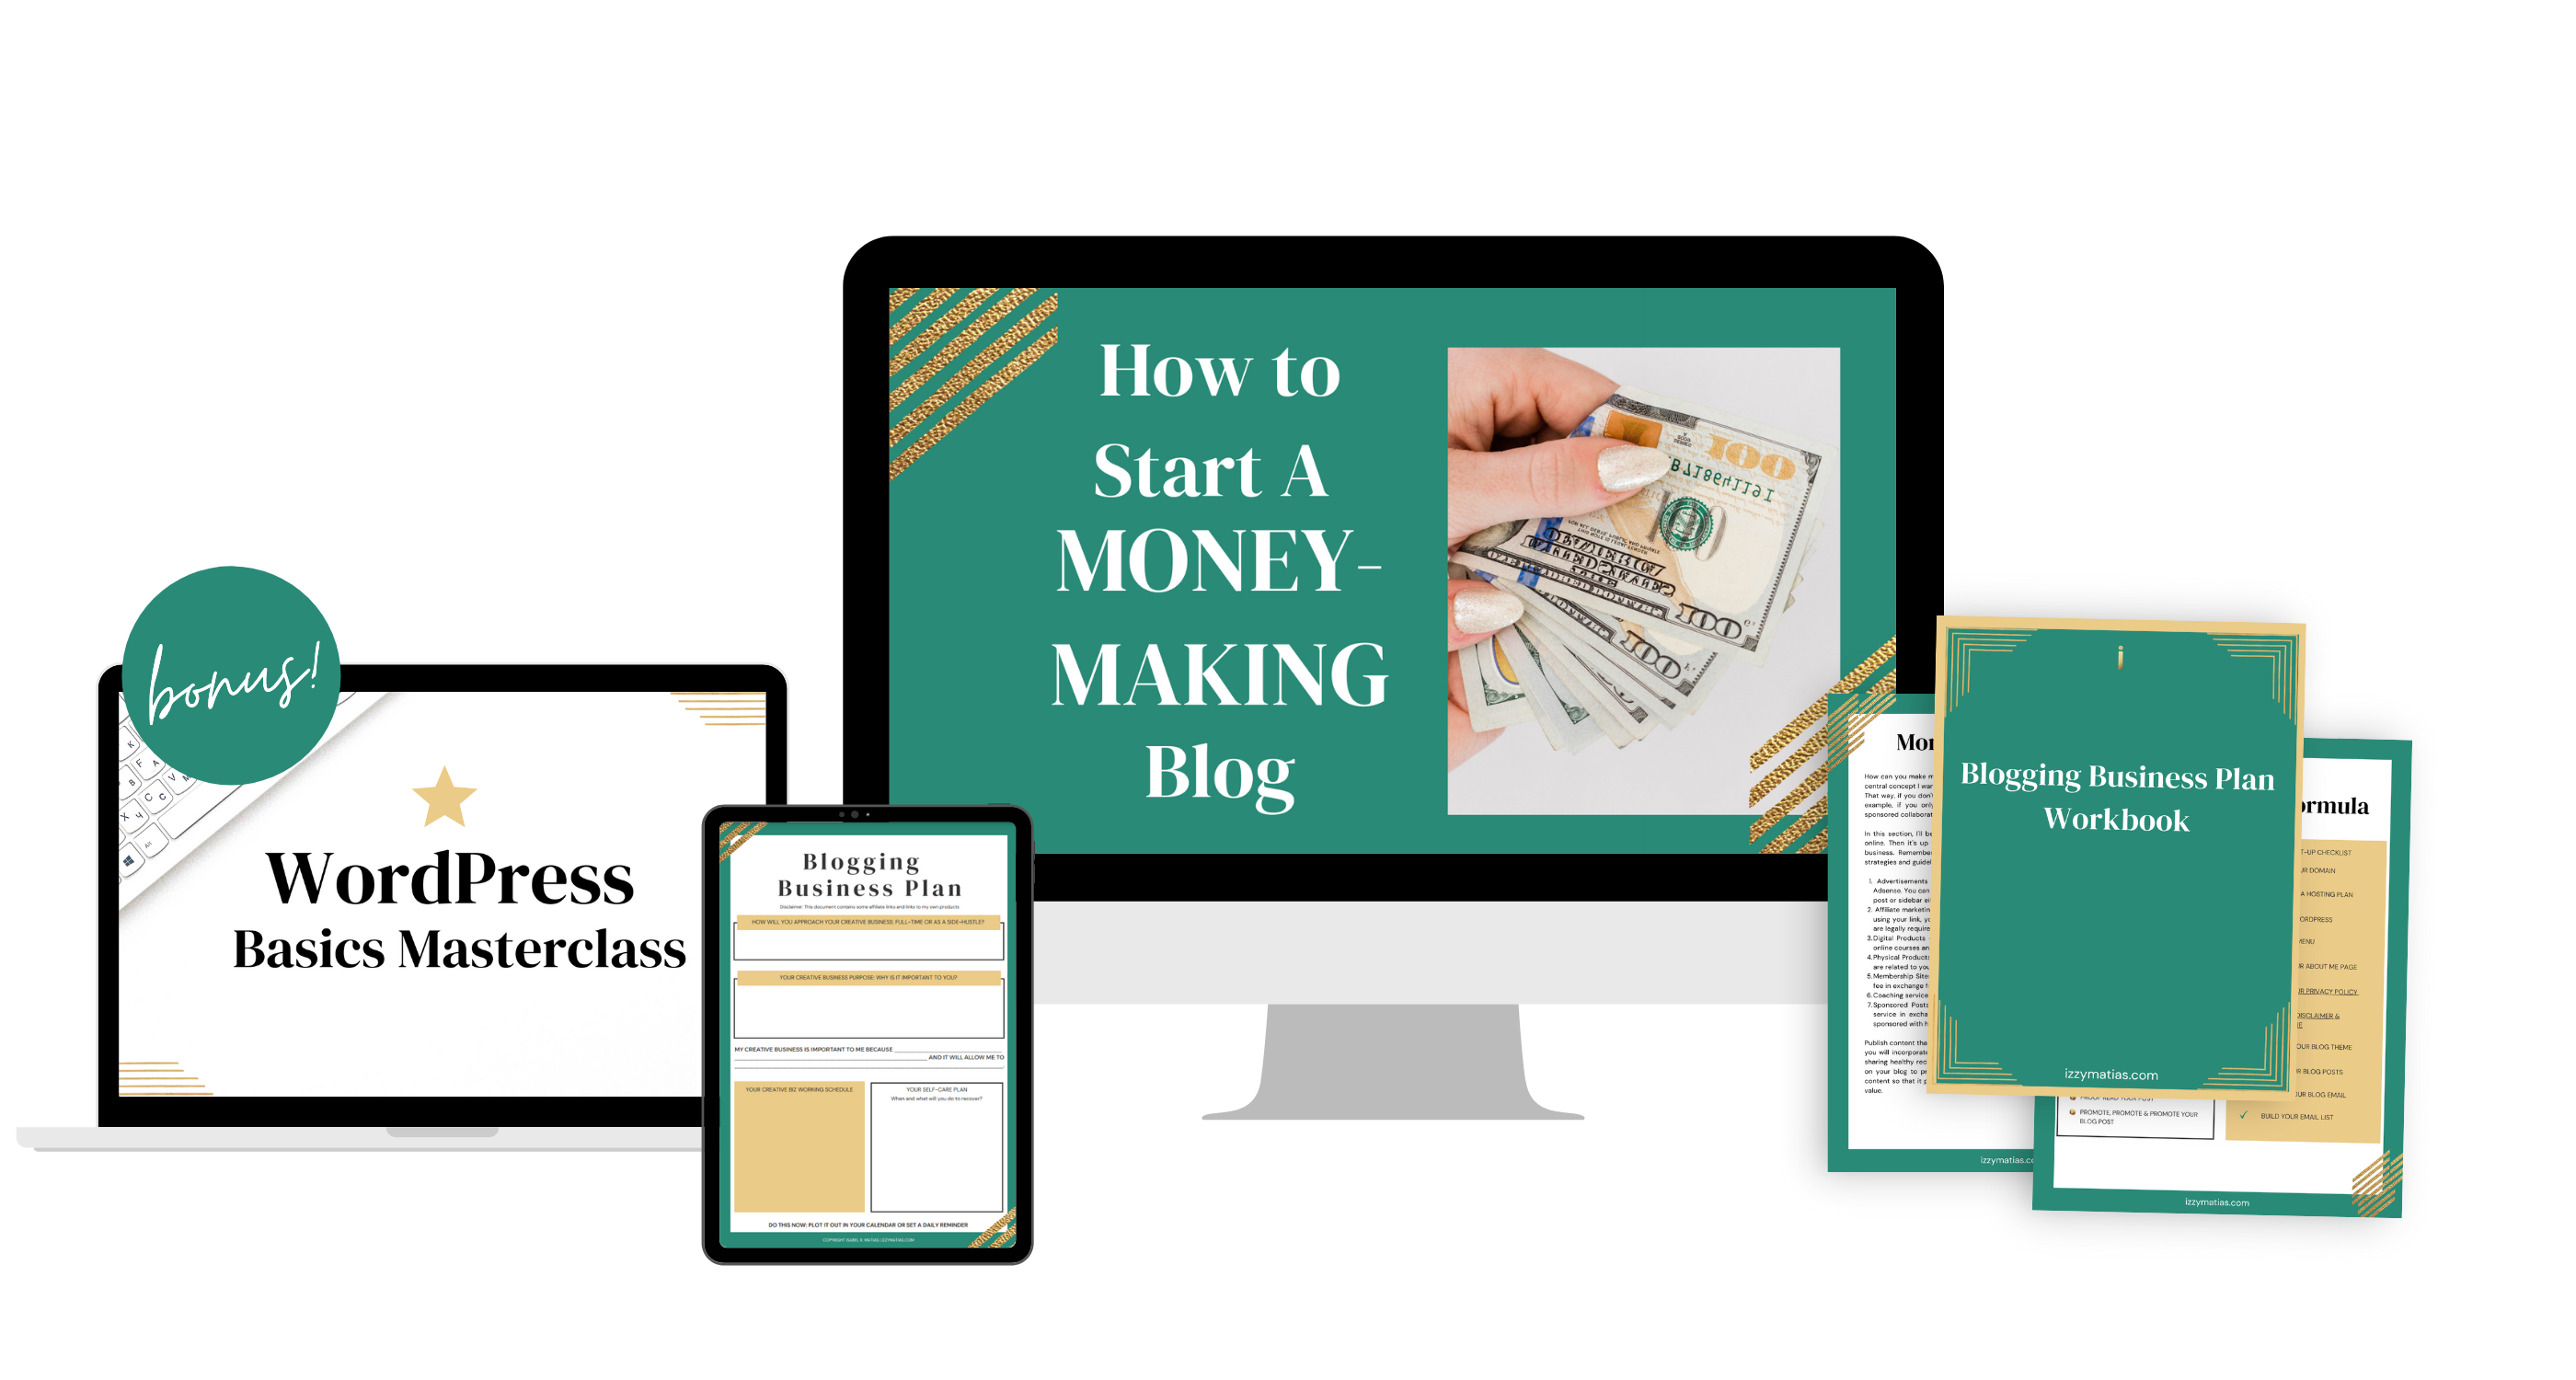 how to start a money making blog course